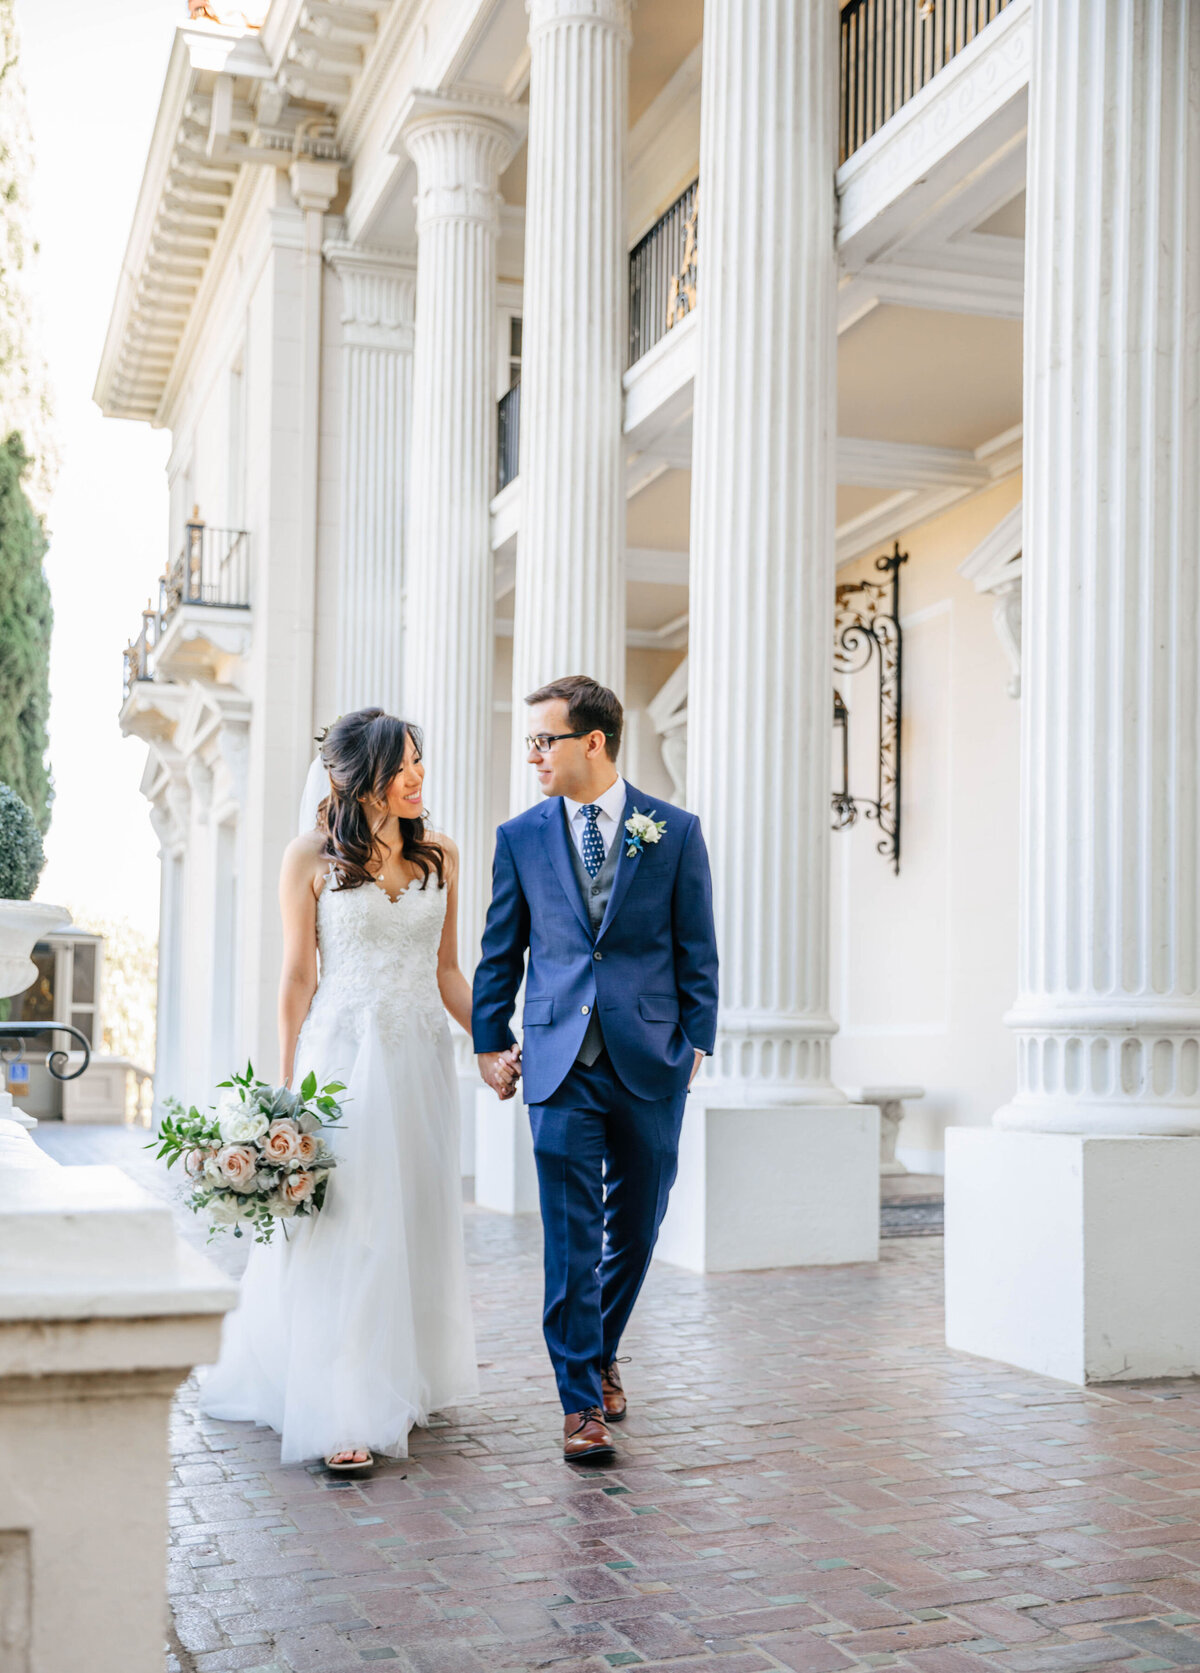 bride and groom walking in front of columns